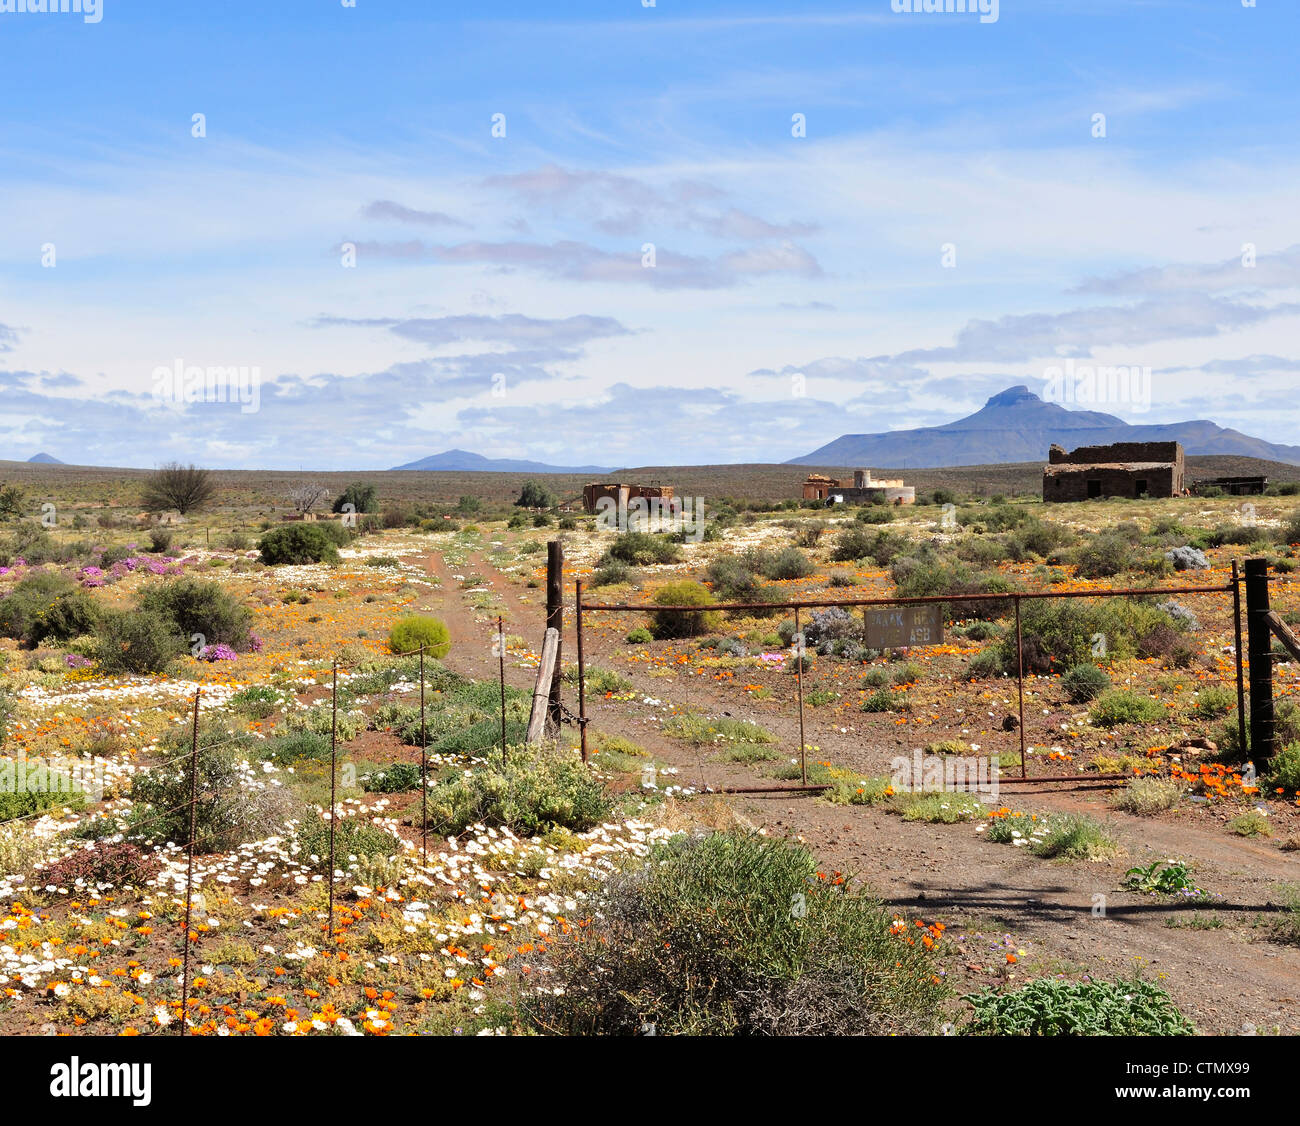 Wild flowers surrounding crumbling farmhouses in Namaqualand, Northern Cape, South Africa - Stock Image